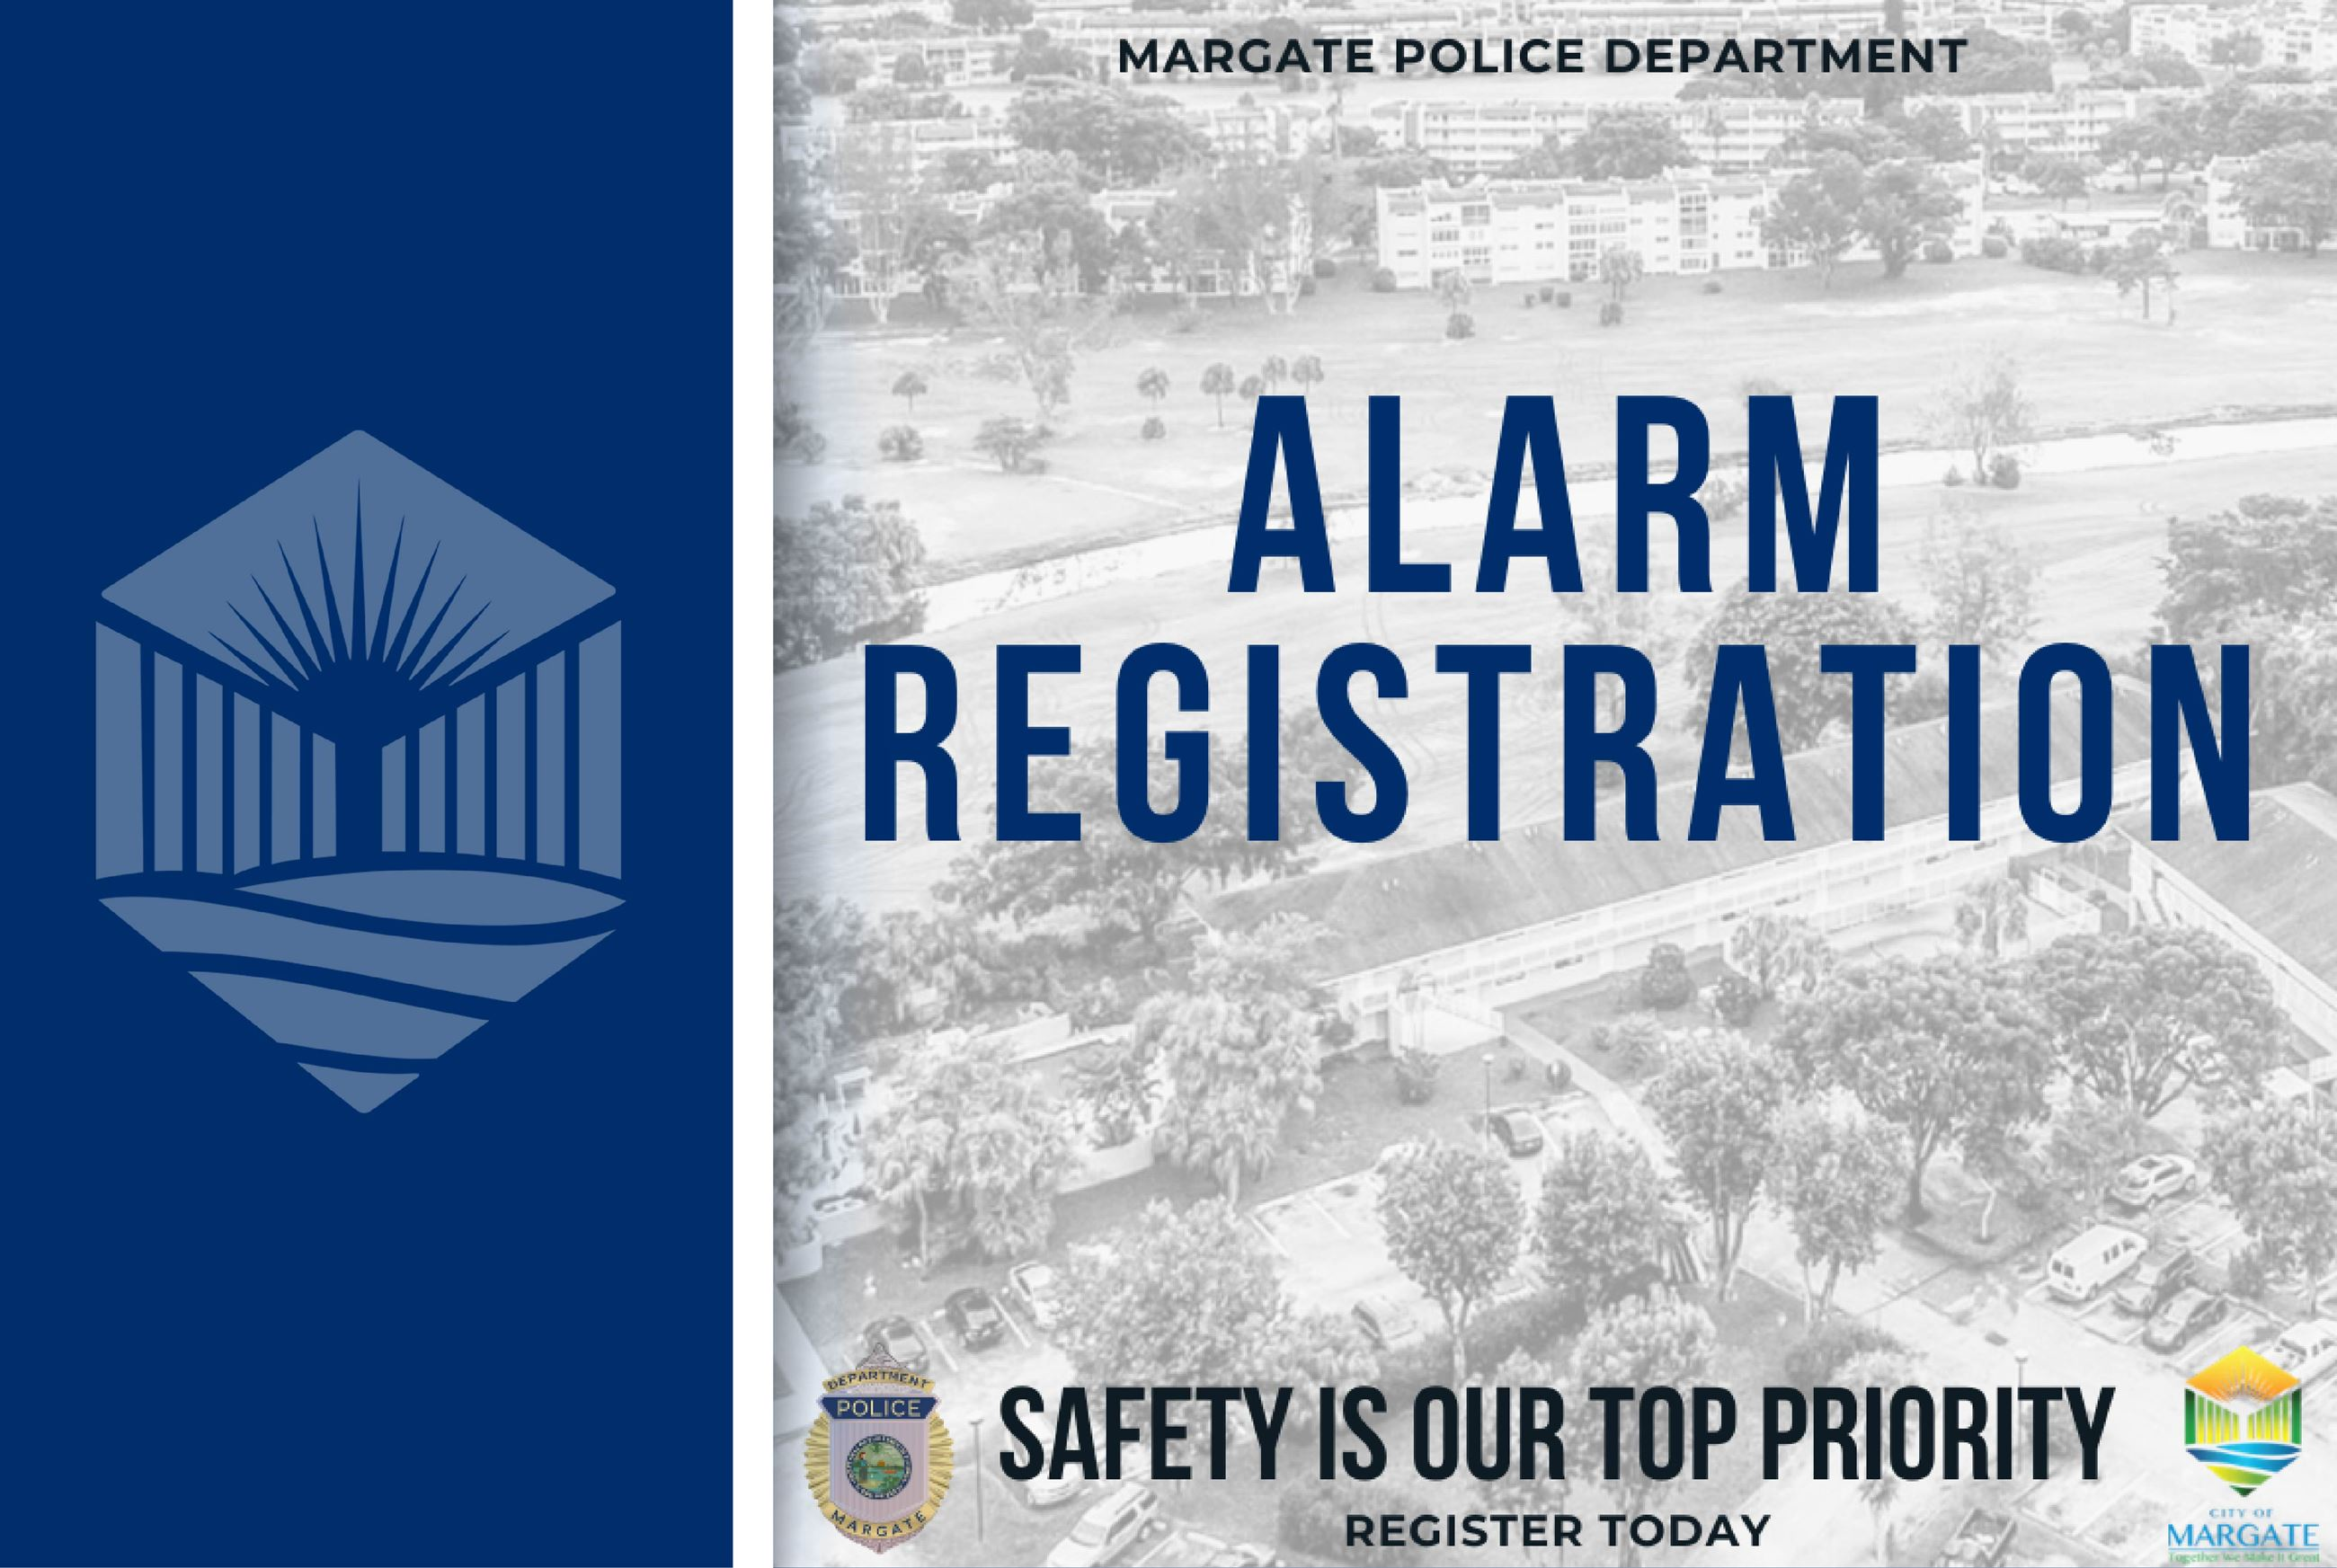 Alarm Registration - City News